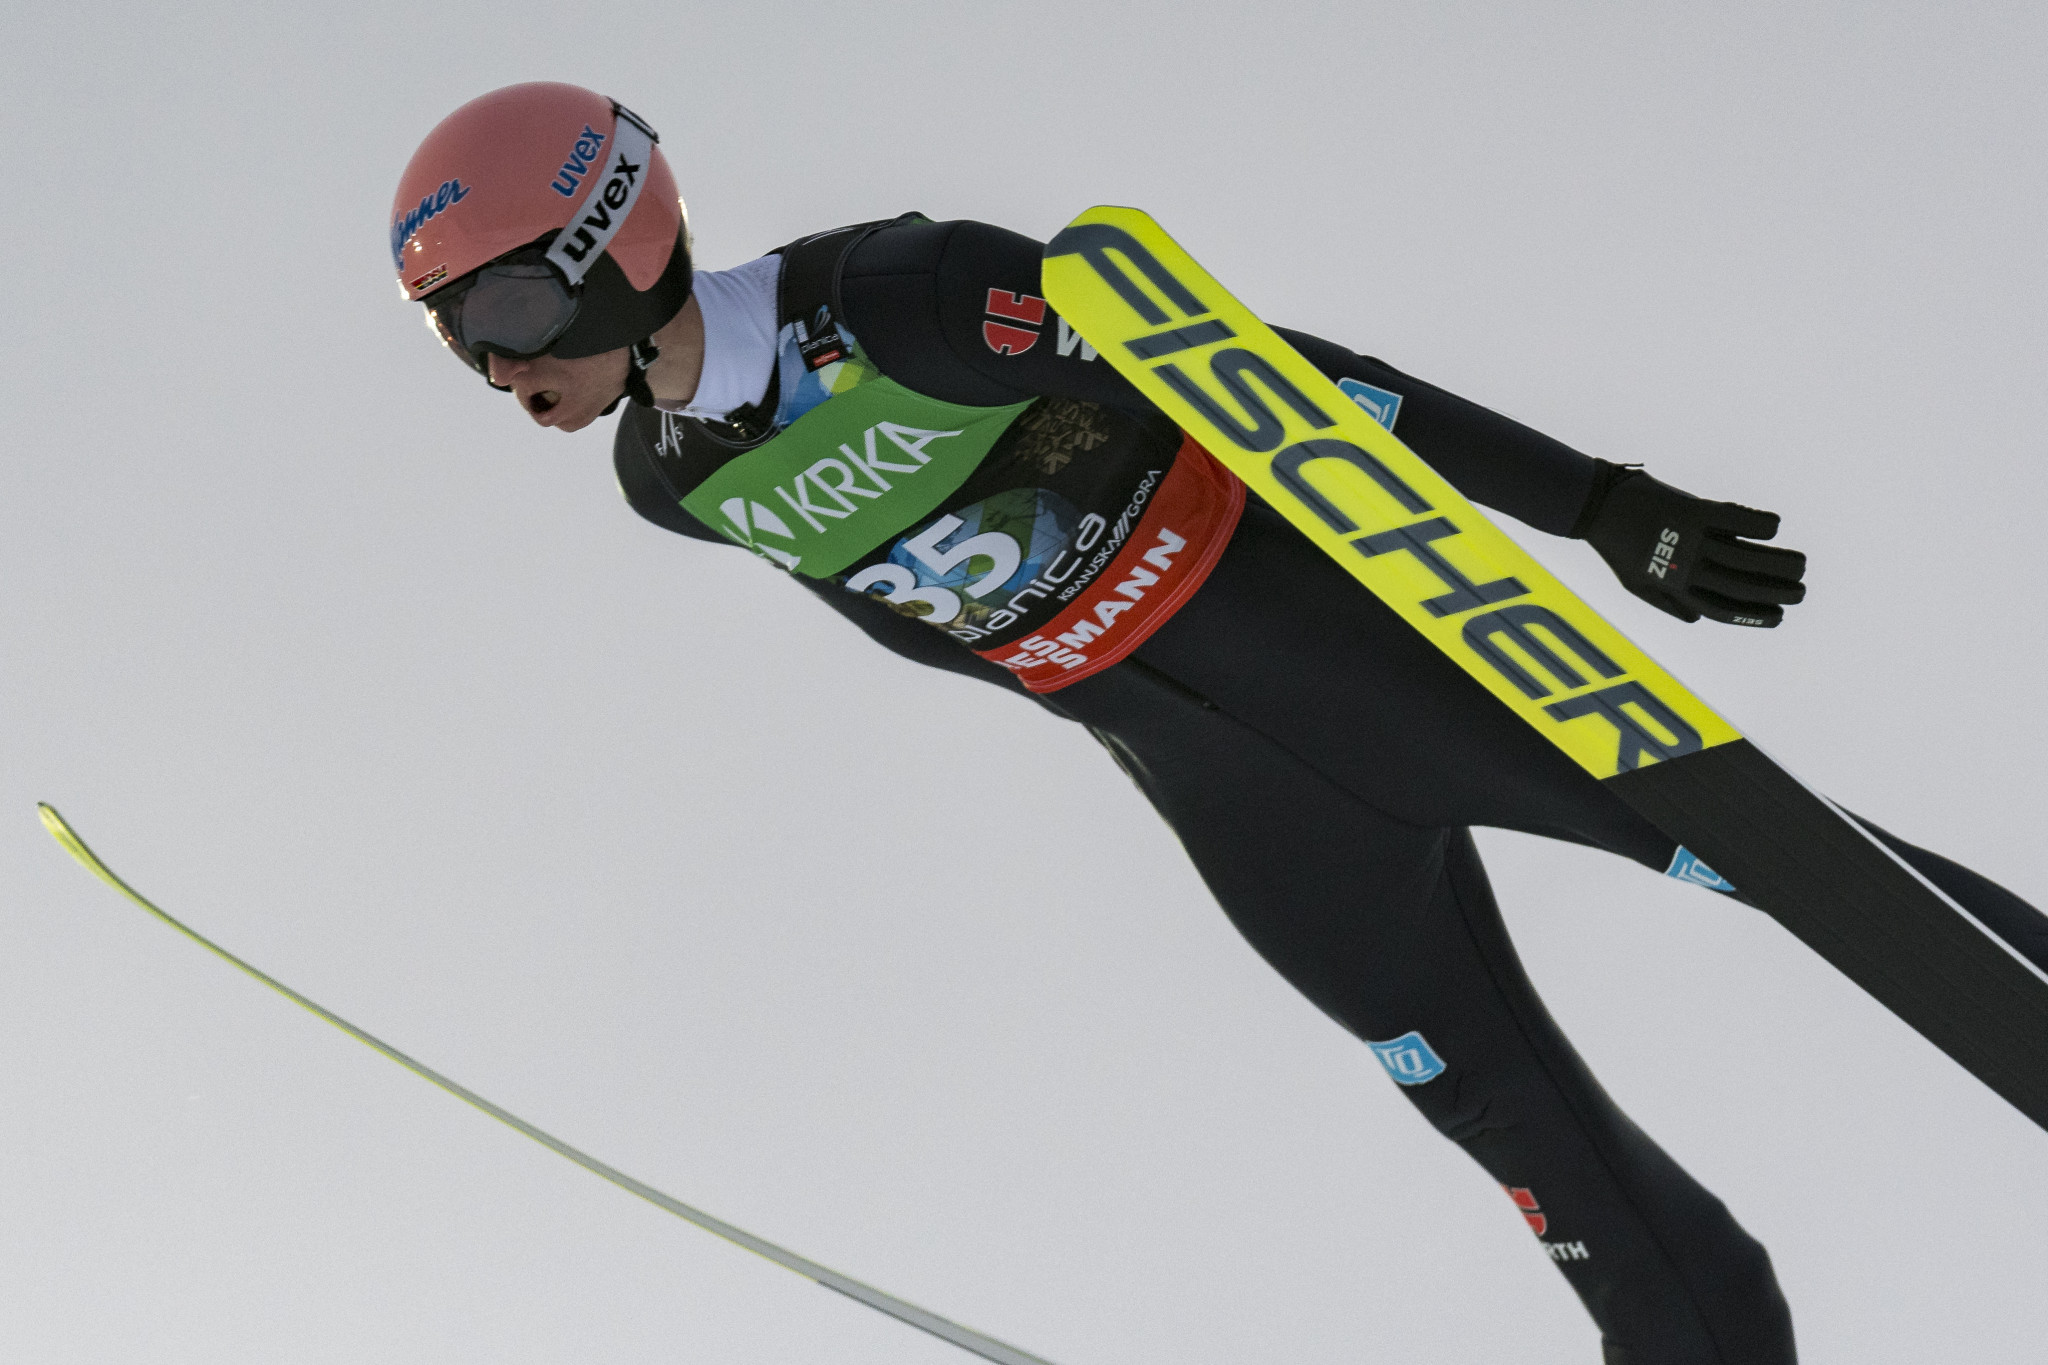 Geiger holds firm to win individual title at FIS Ski Flying World Championships